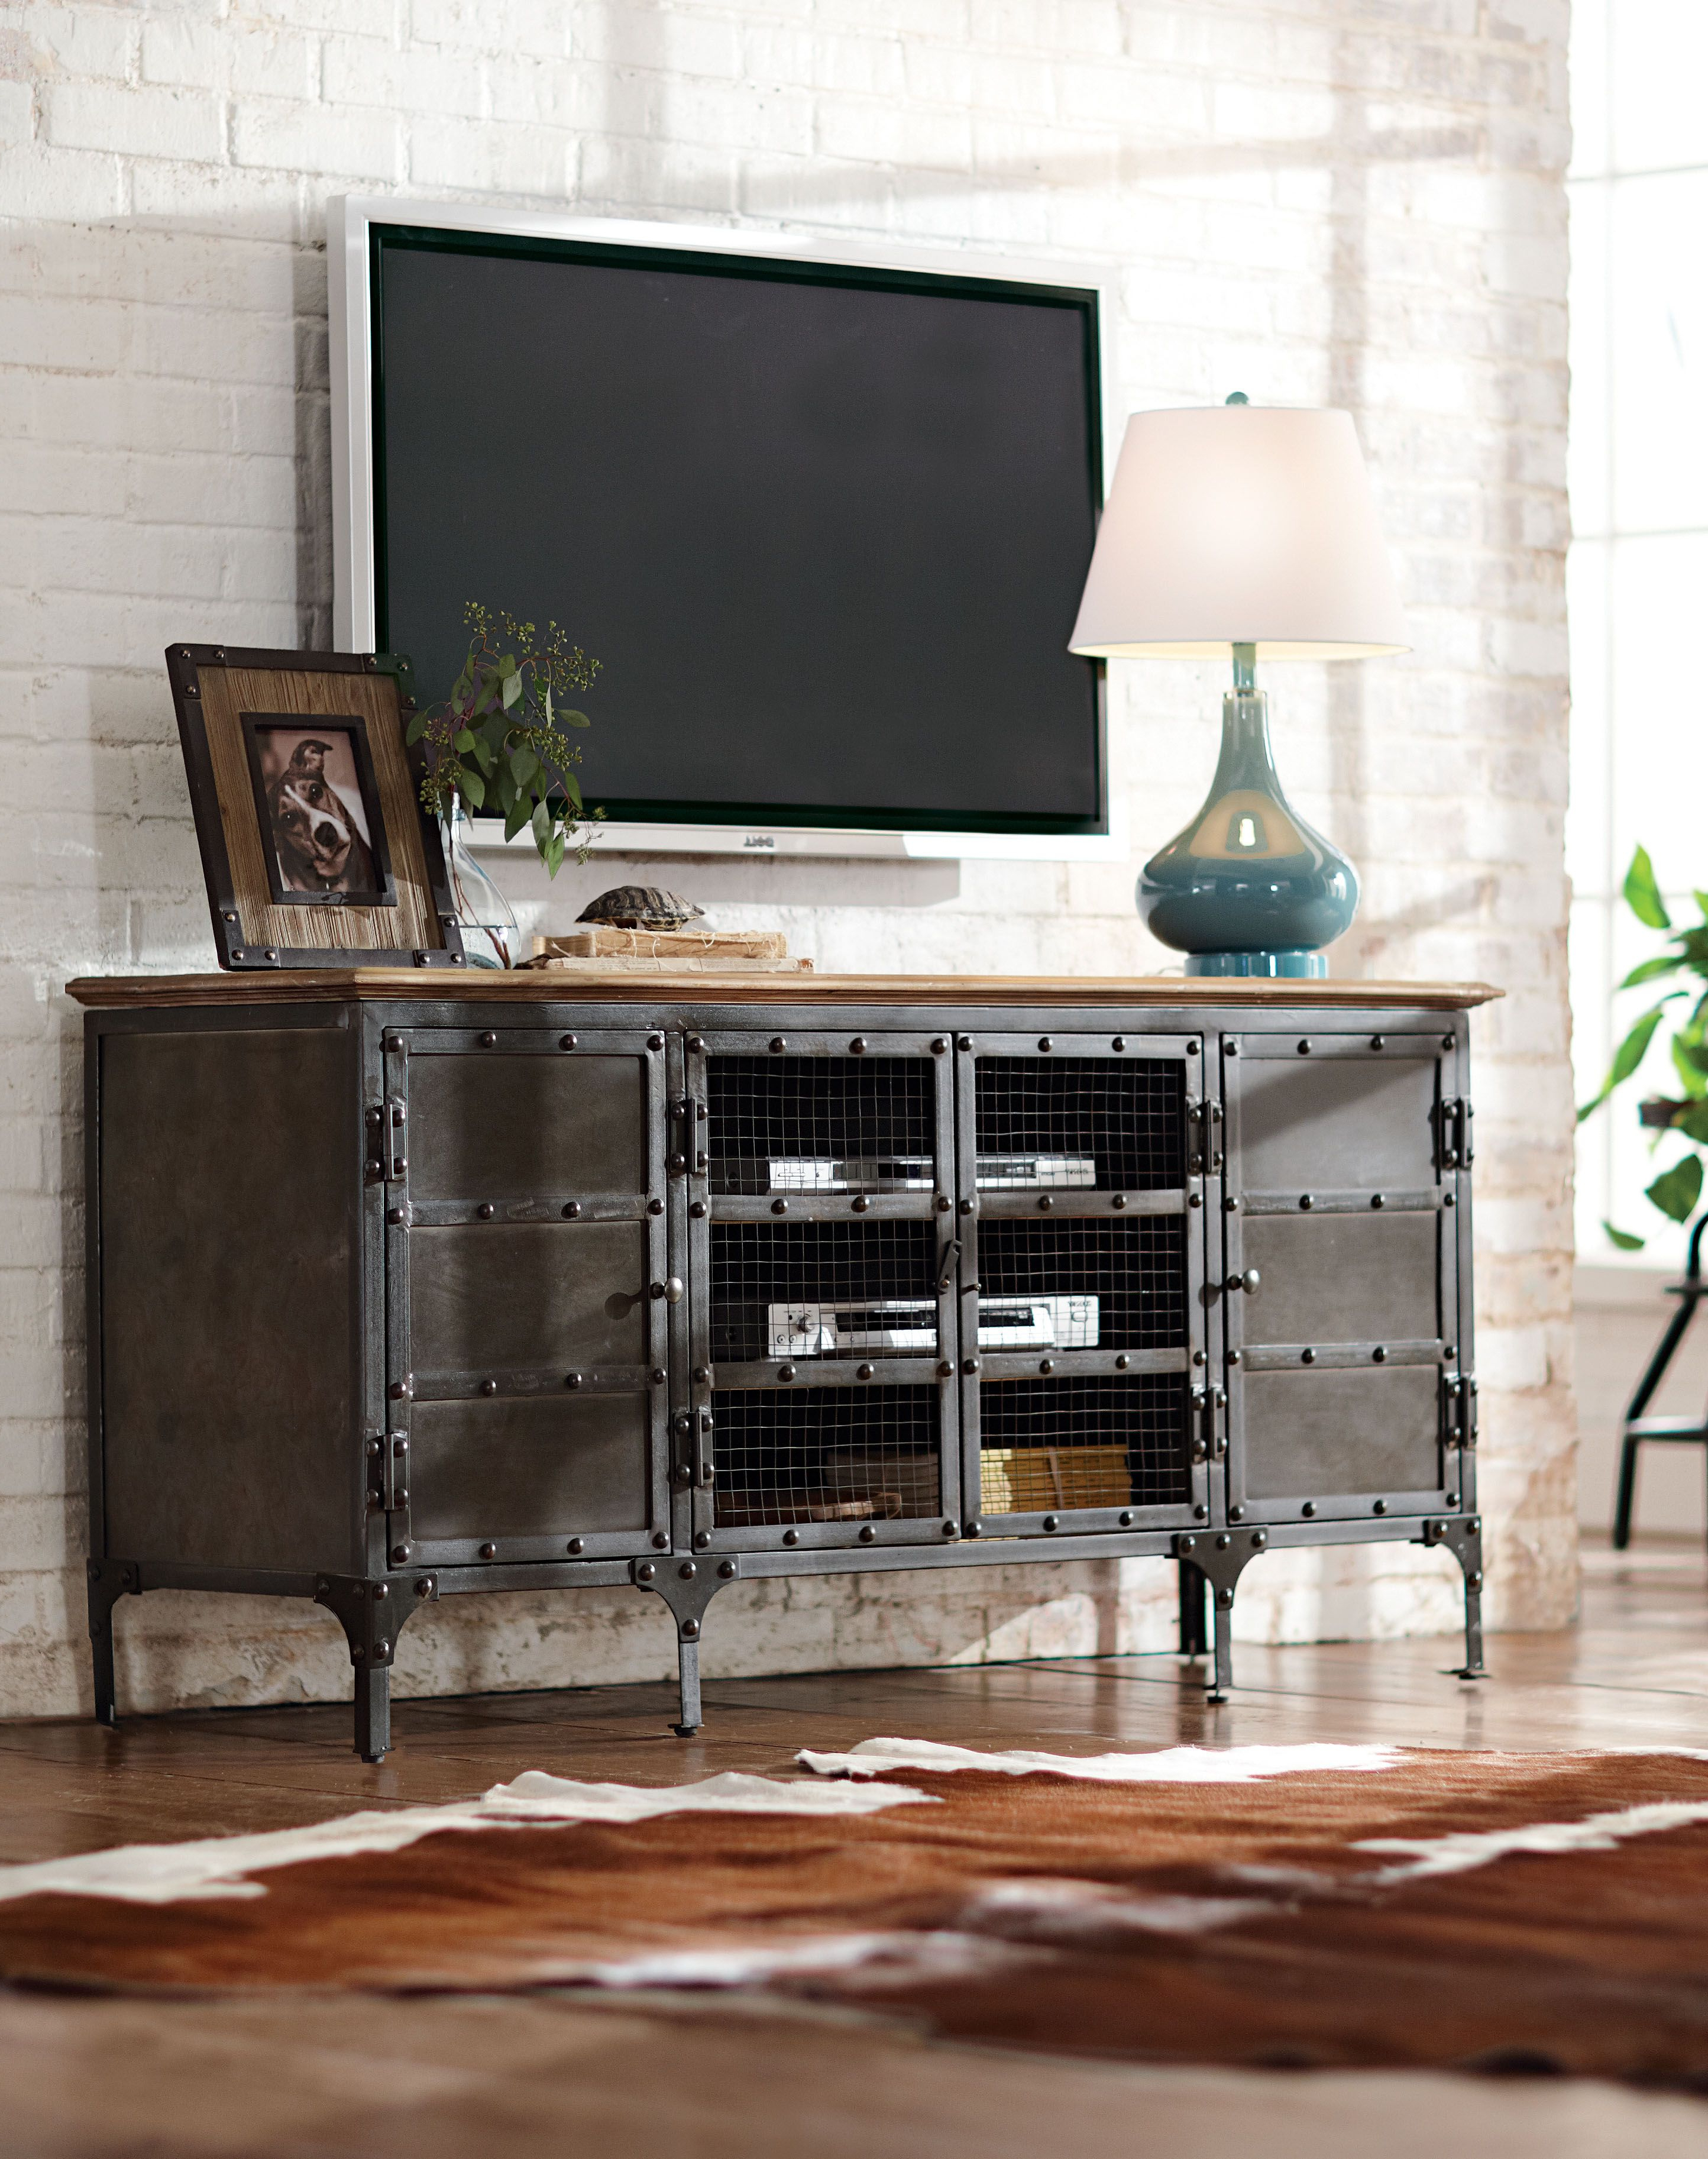 Tv Stand Made Stylish (View 17 of 20)